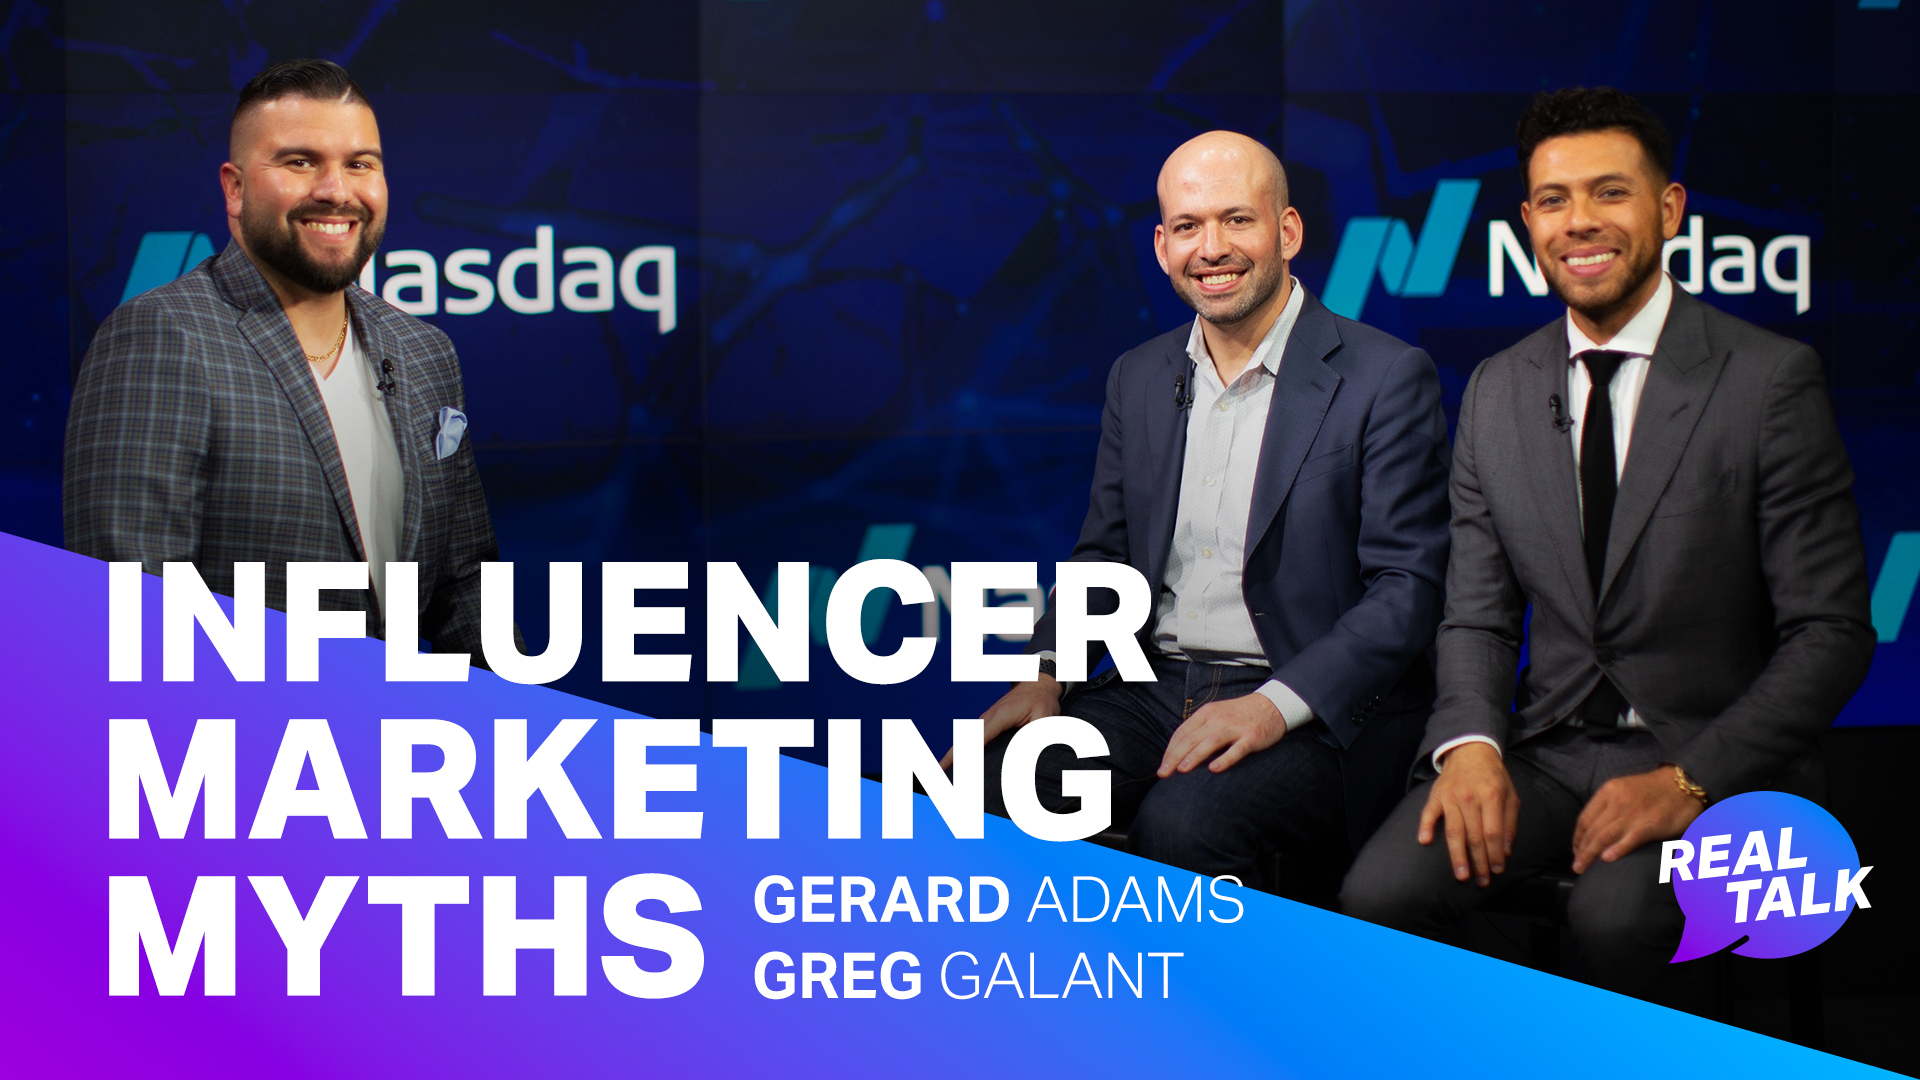 Influencer Marketing Myths – Episode